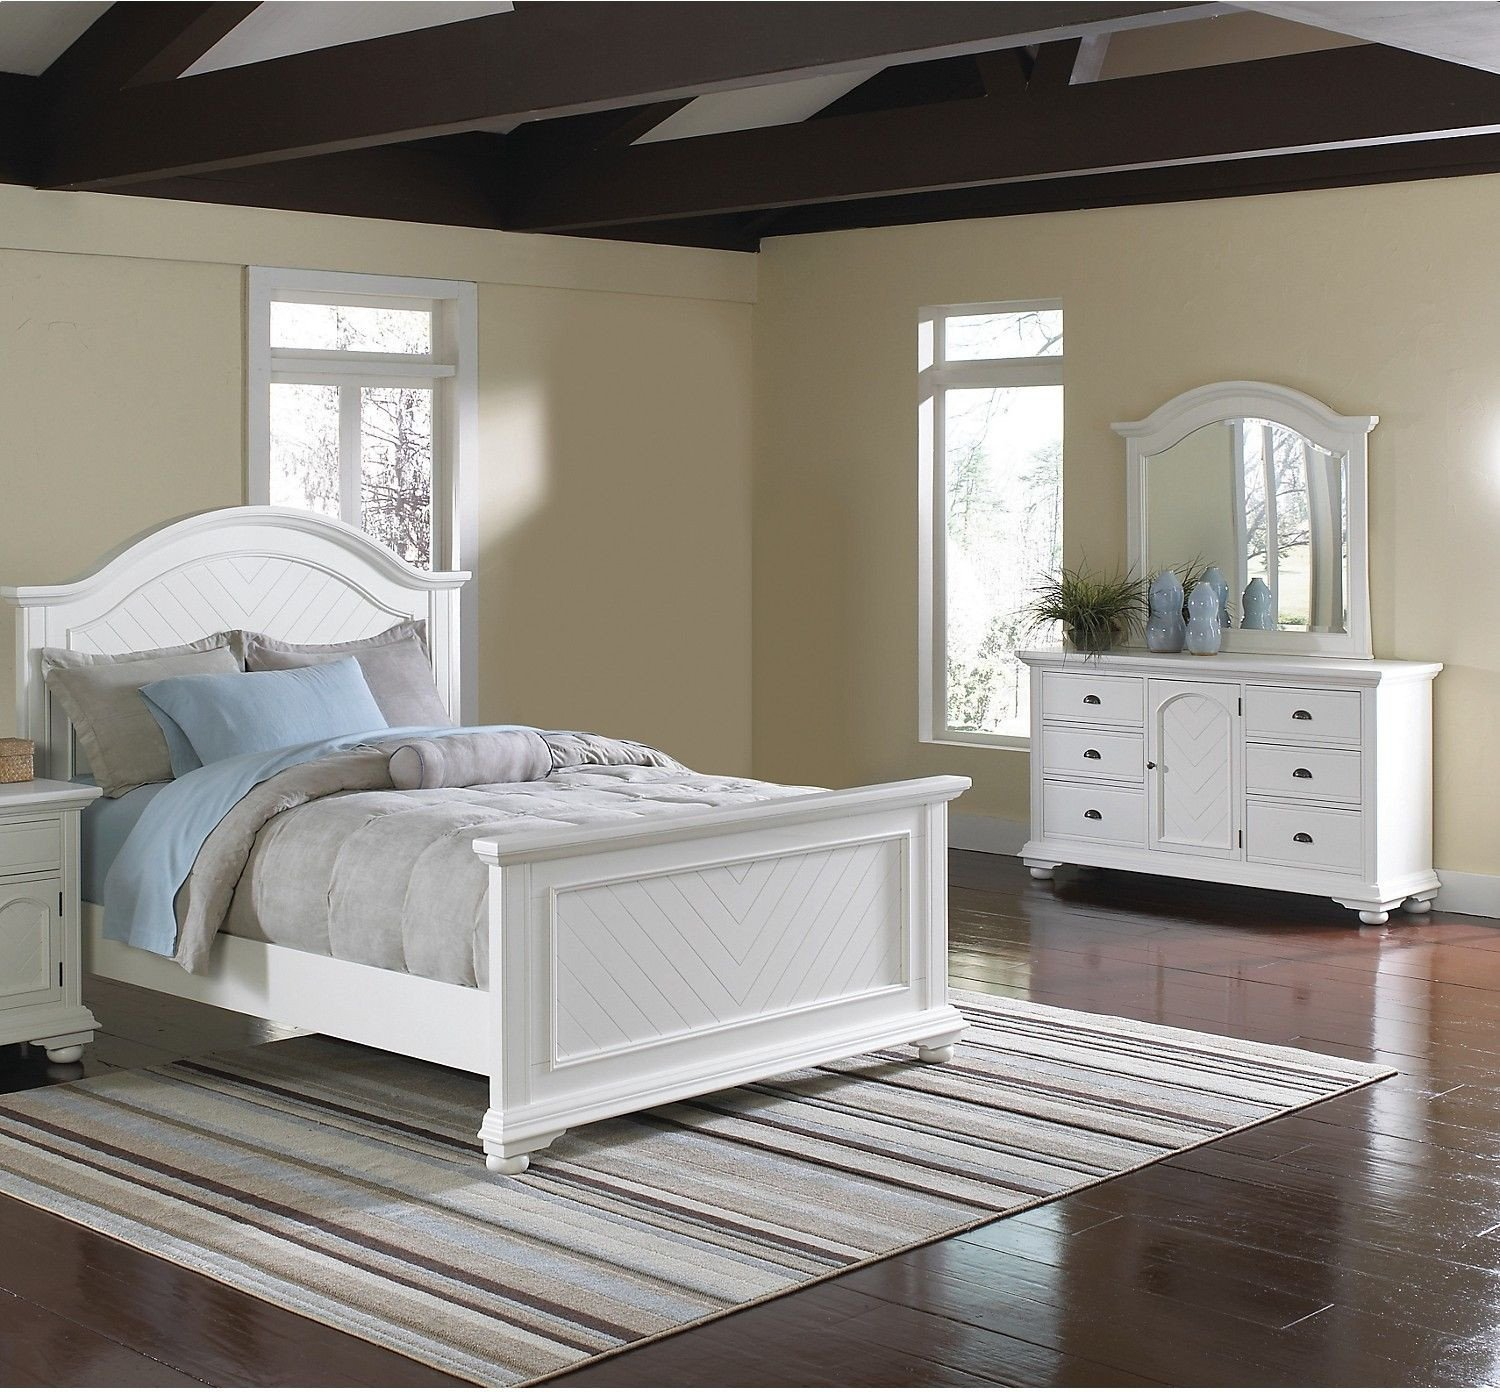 White Bedroom Set Queen Luxury Add A Fresh New Look to Your Home with This Brook Bedroom